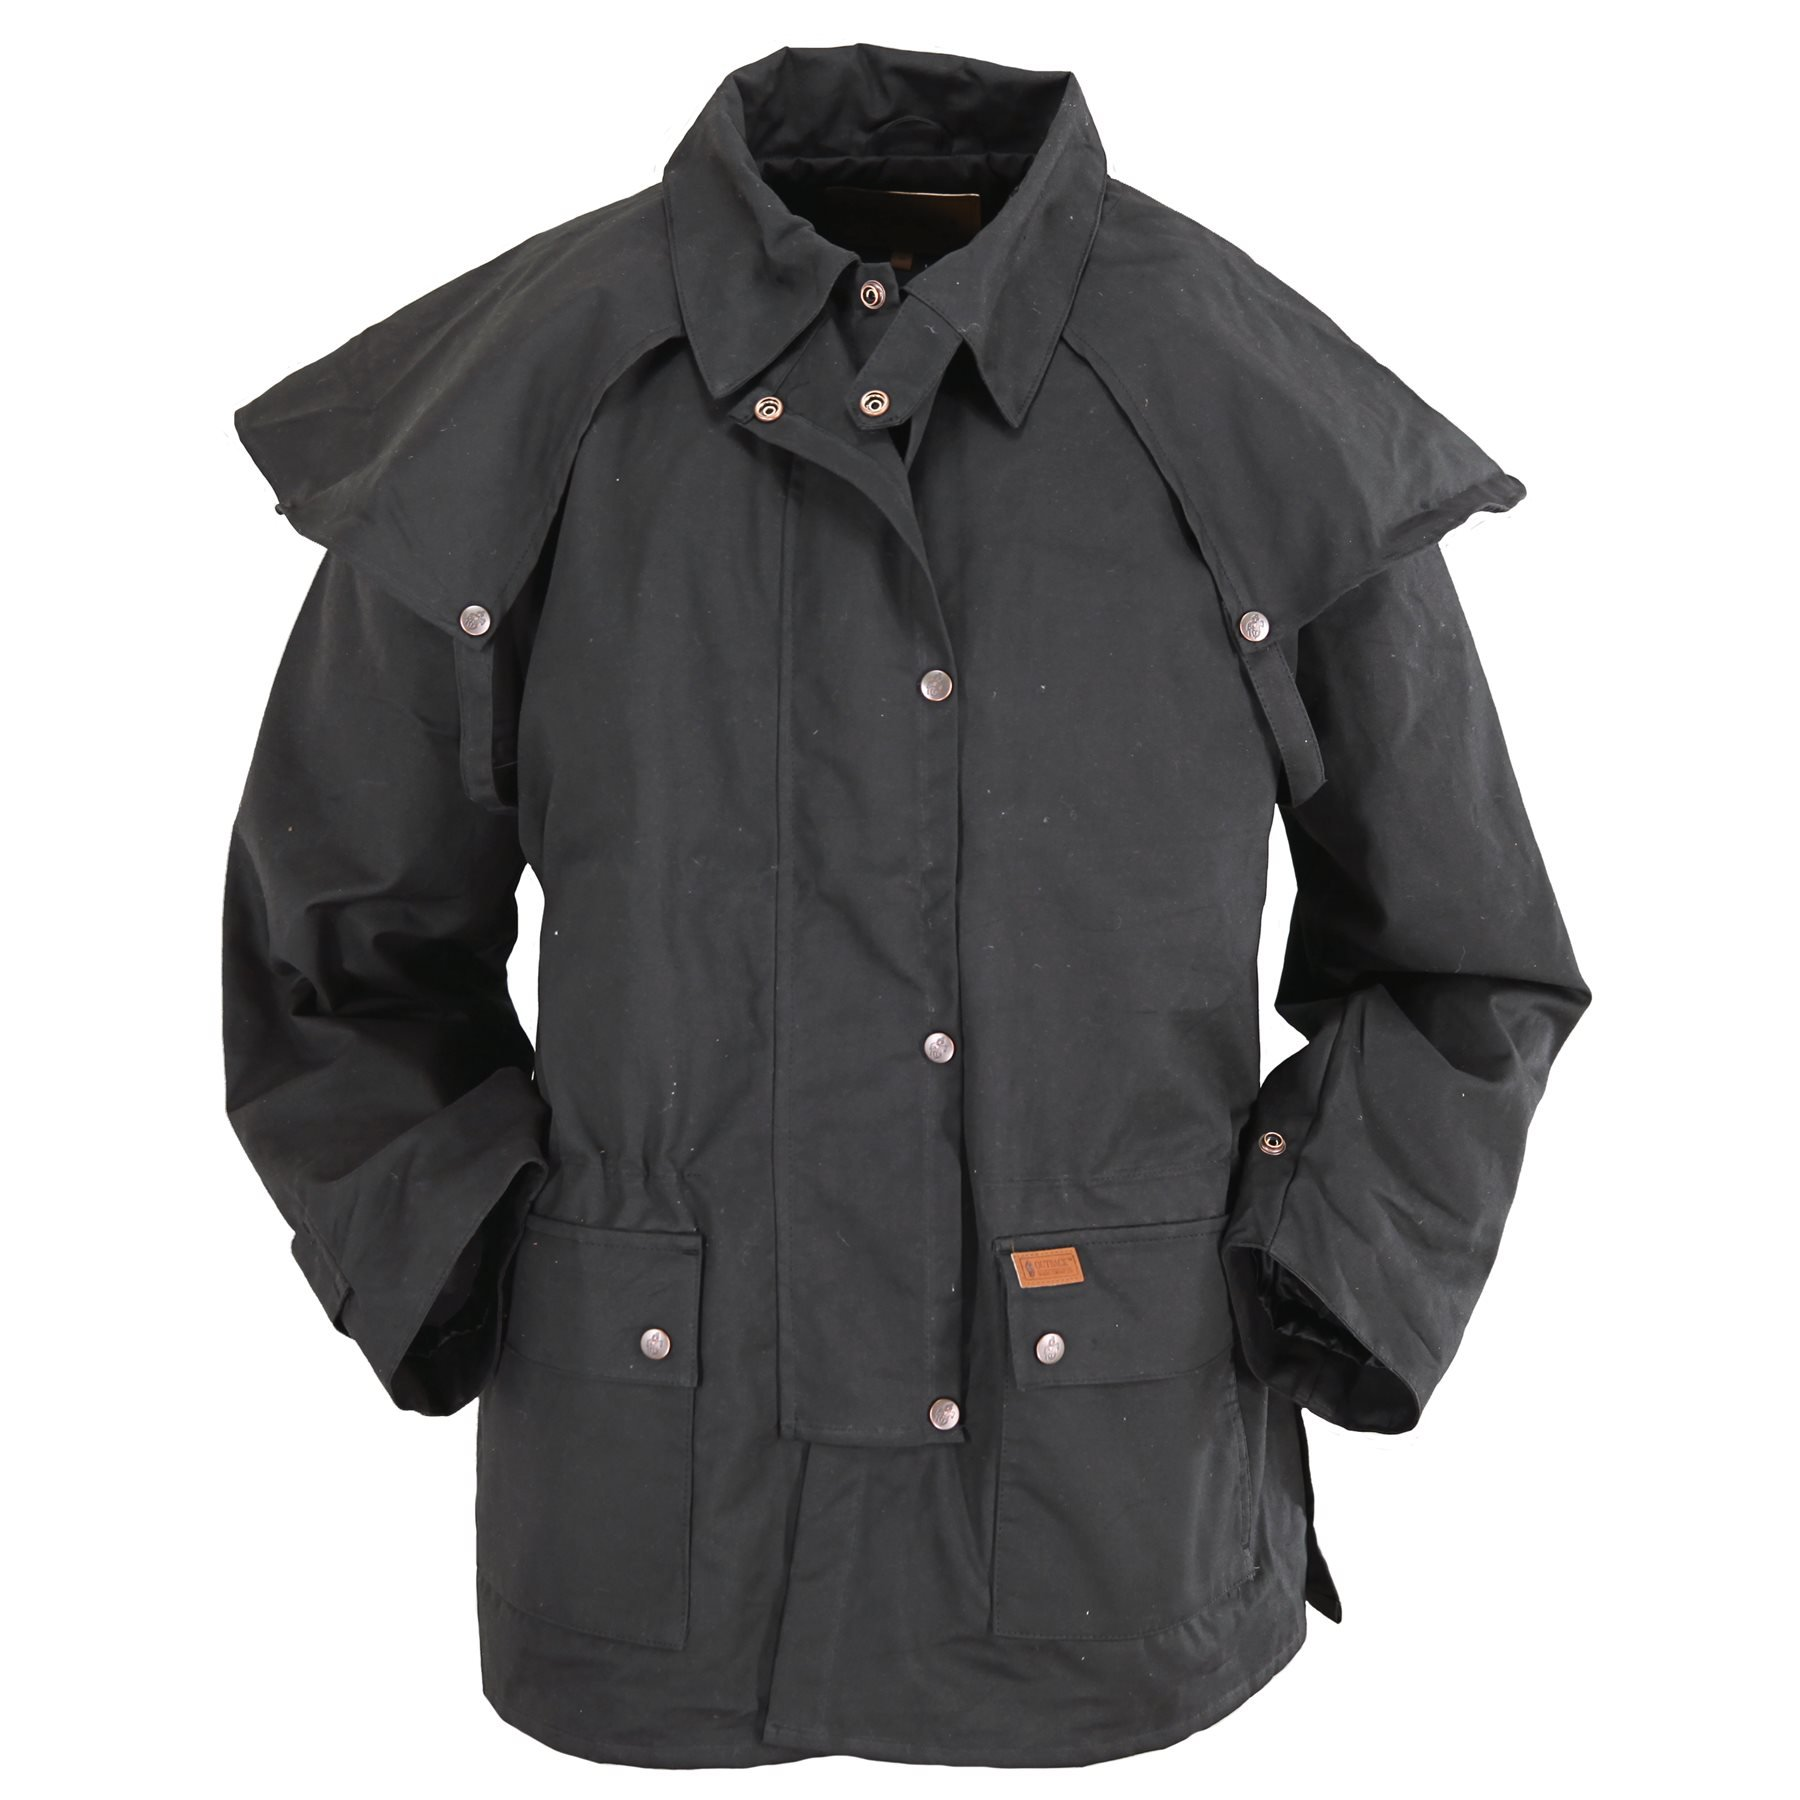 Outback Trading Company Bush Ranger Jacket, Black, M by Outback Trading